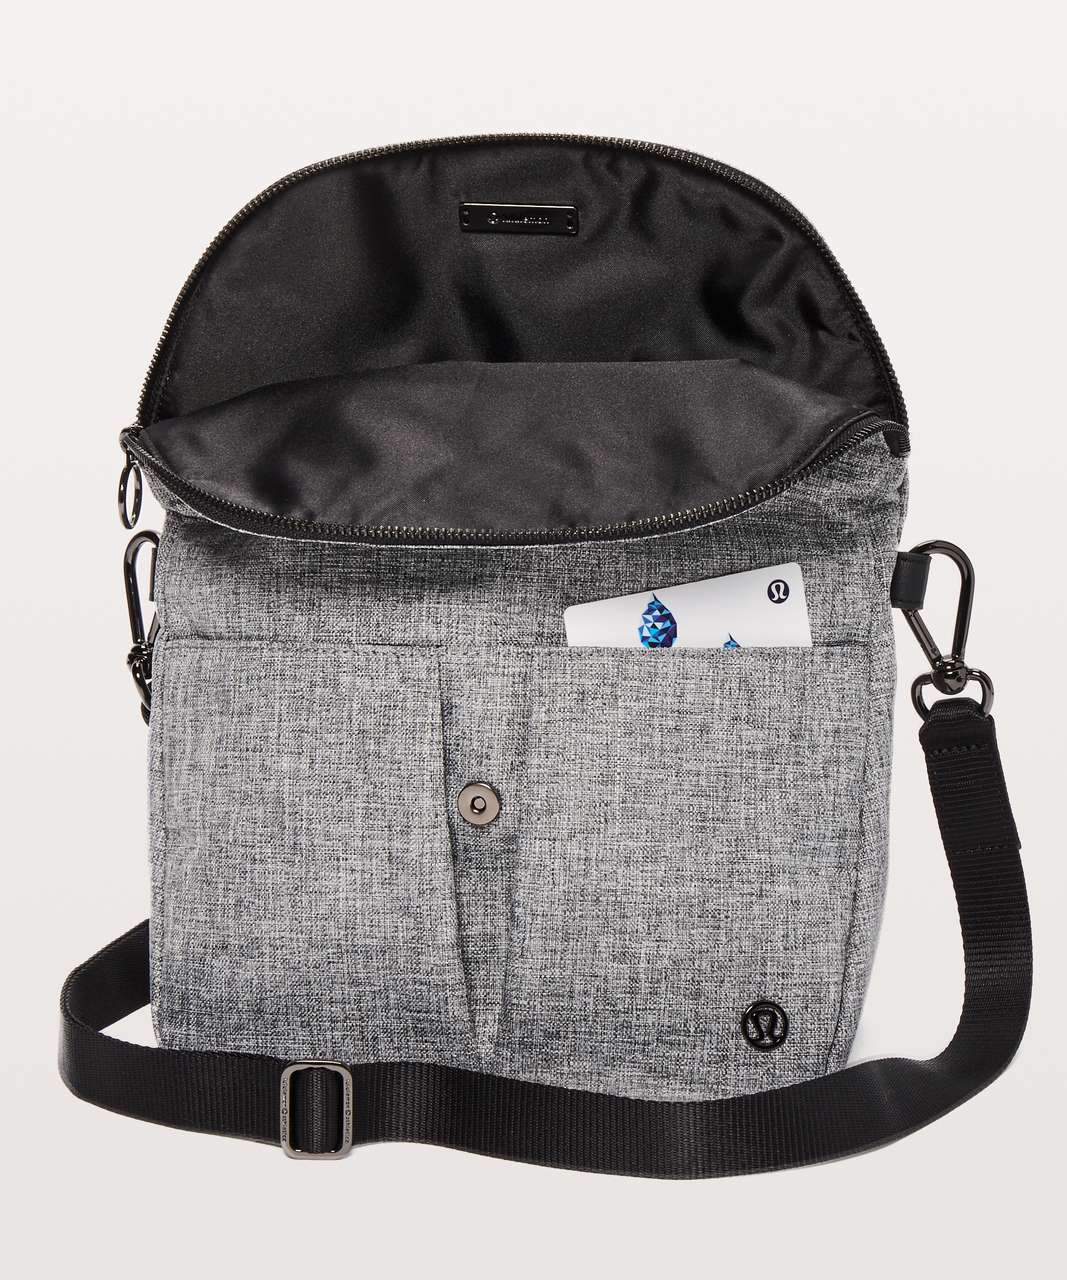 Lululemon All Night Festival Bag *5L - Heathered Black